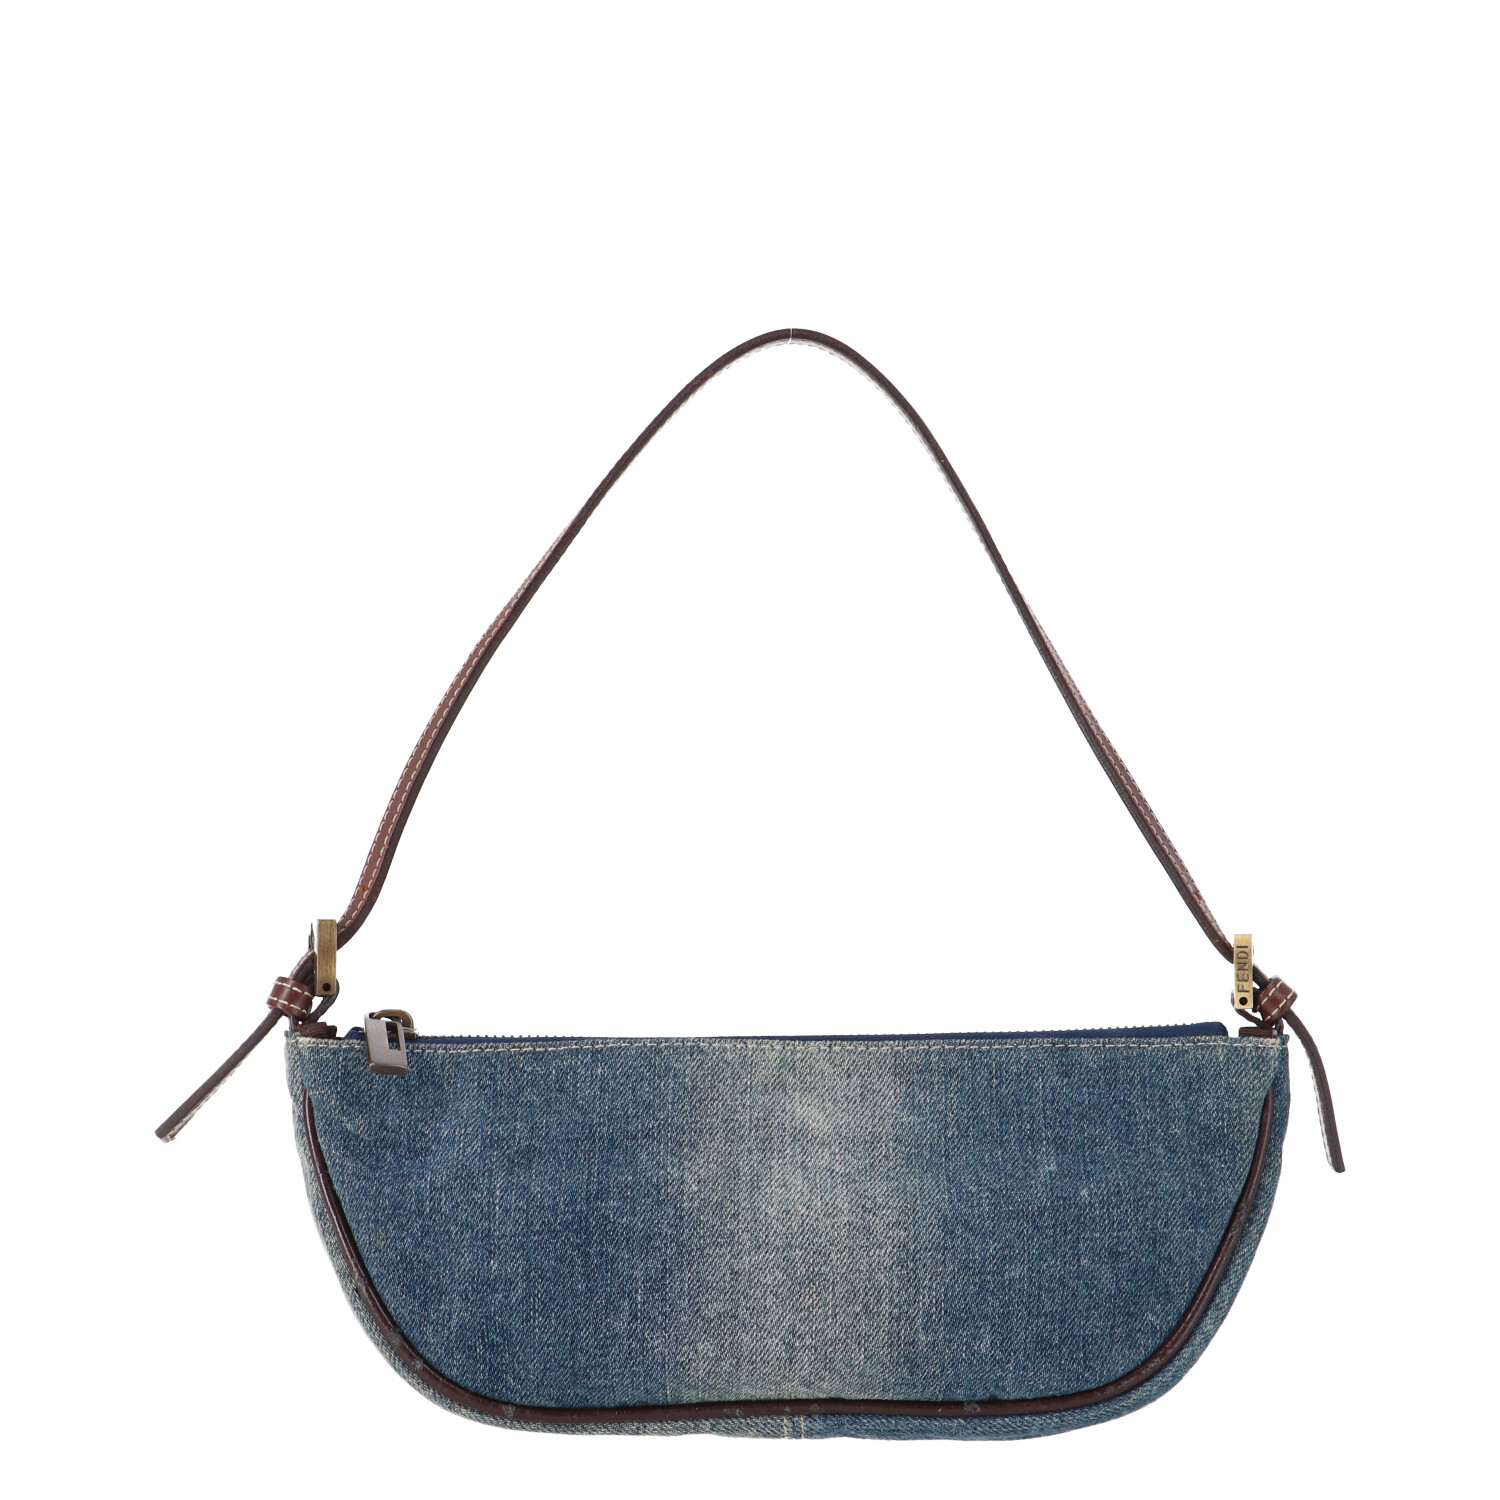 Fendi Blue Denim Shoulder Bag